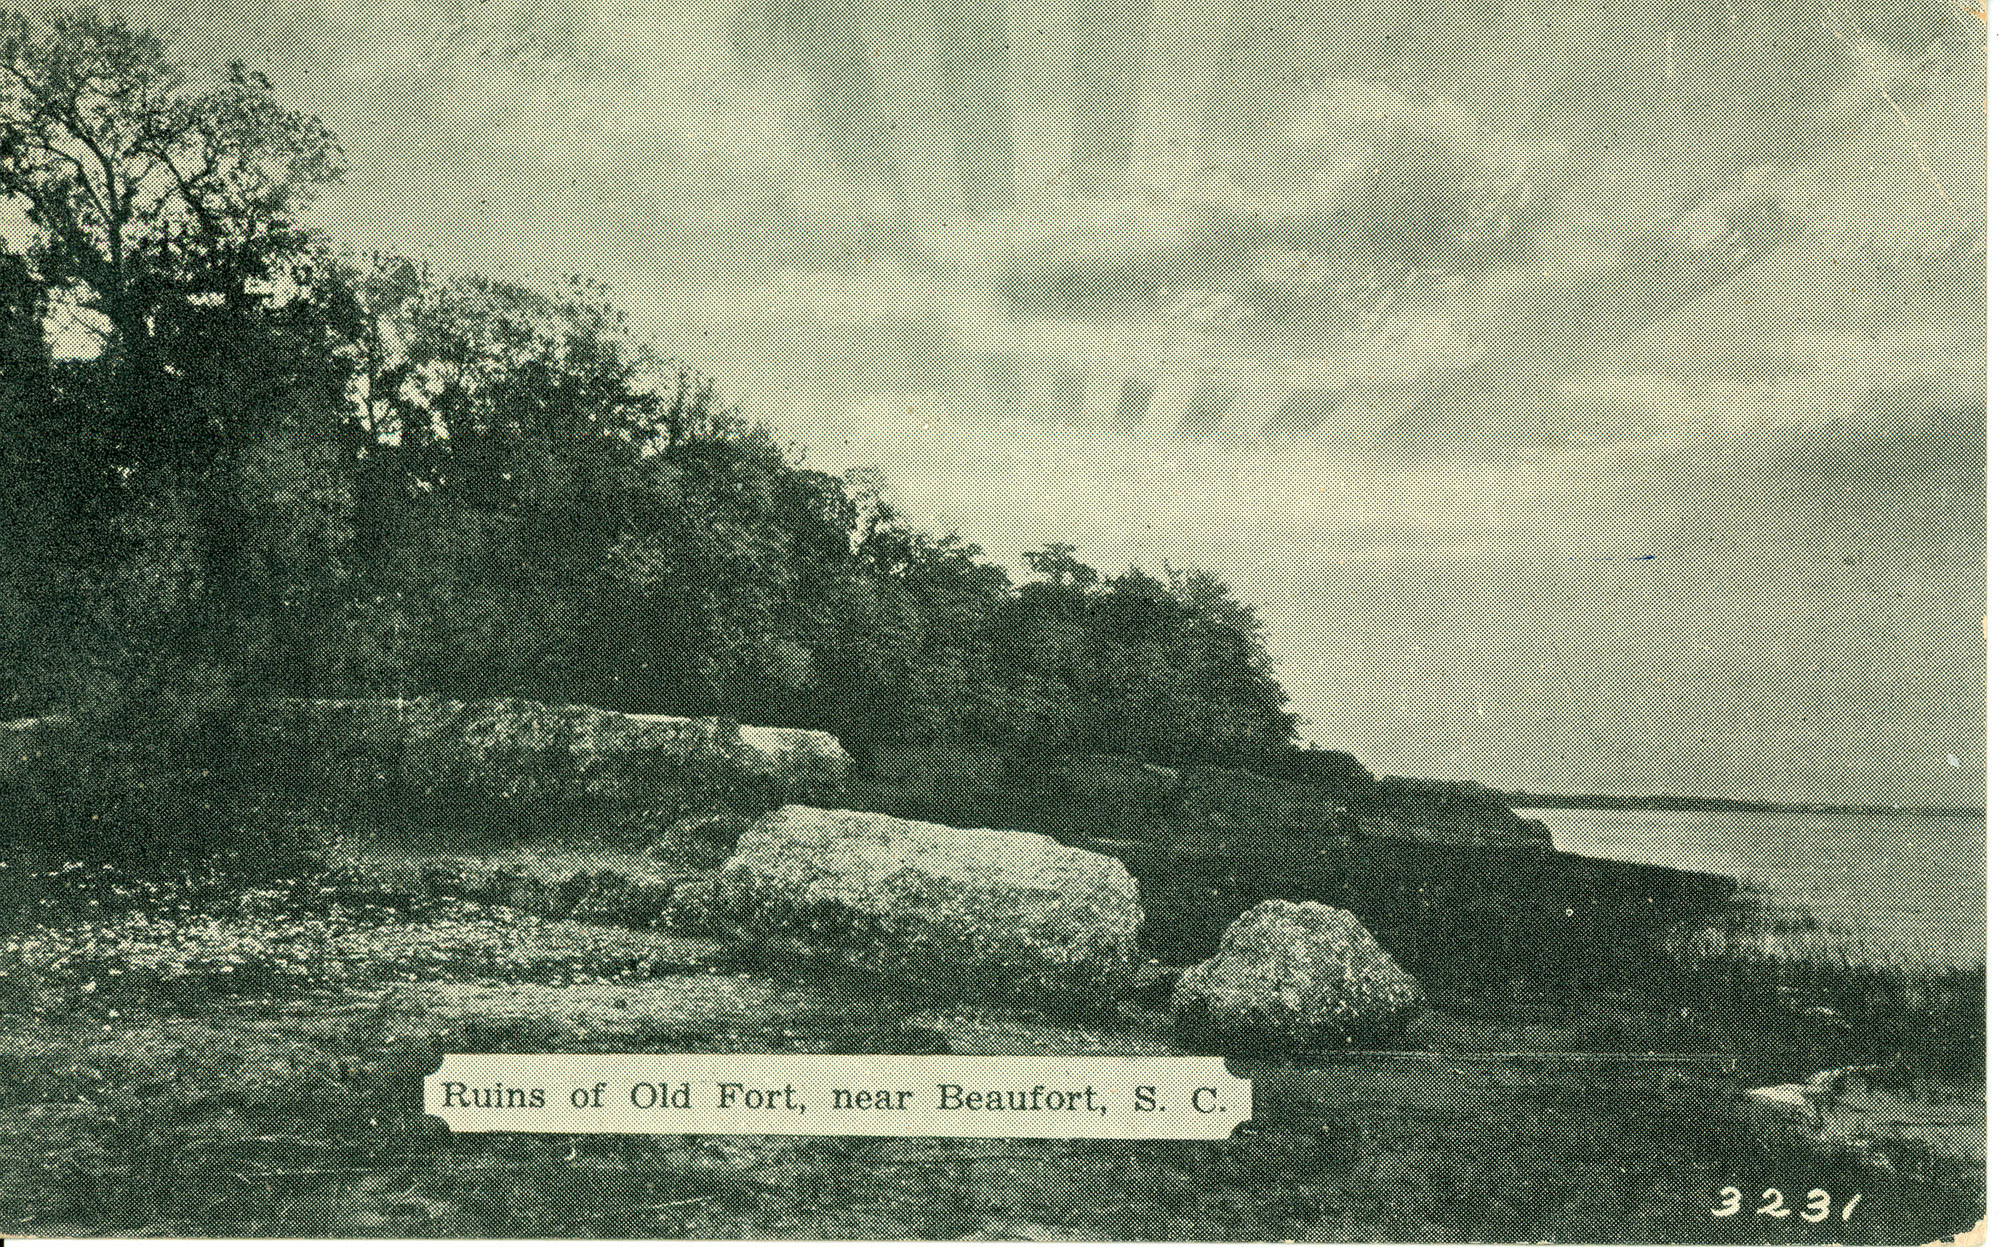 Ruins of Old Fort, near Beaufort, S.C.